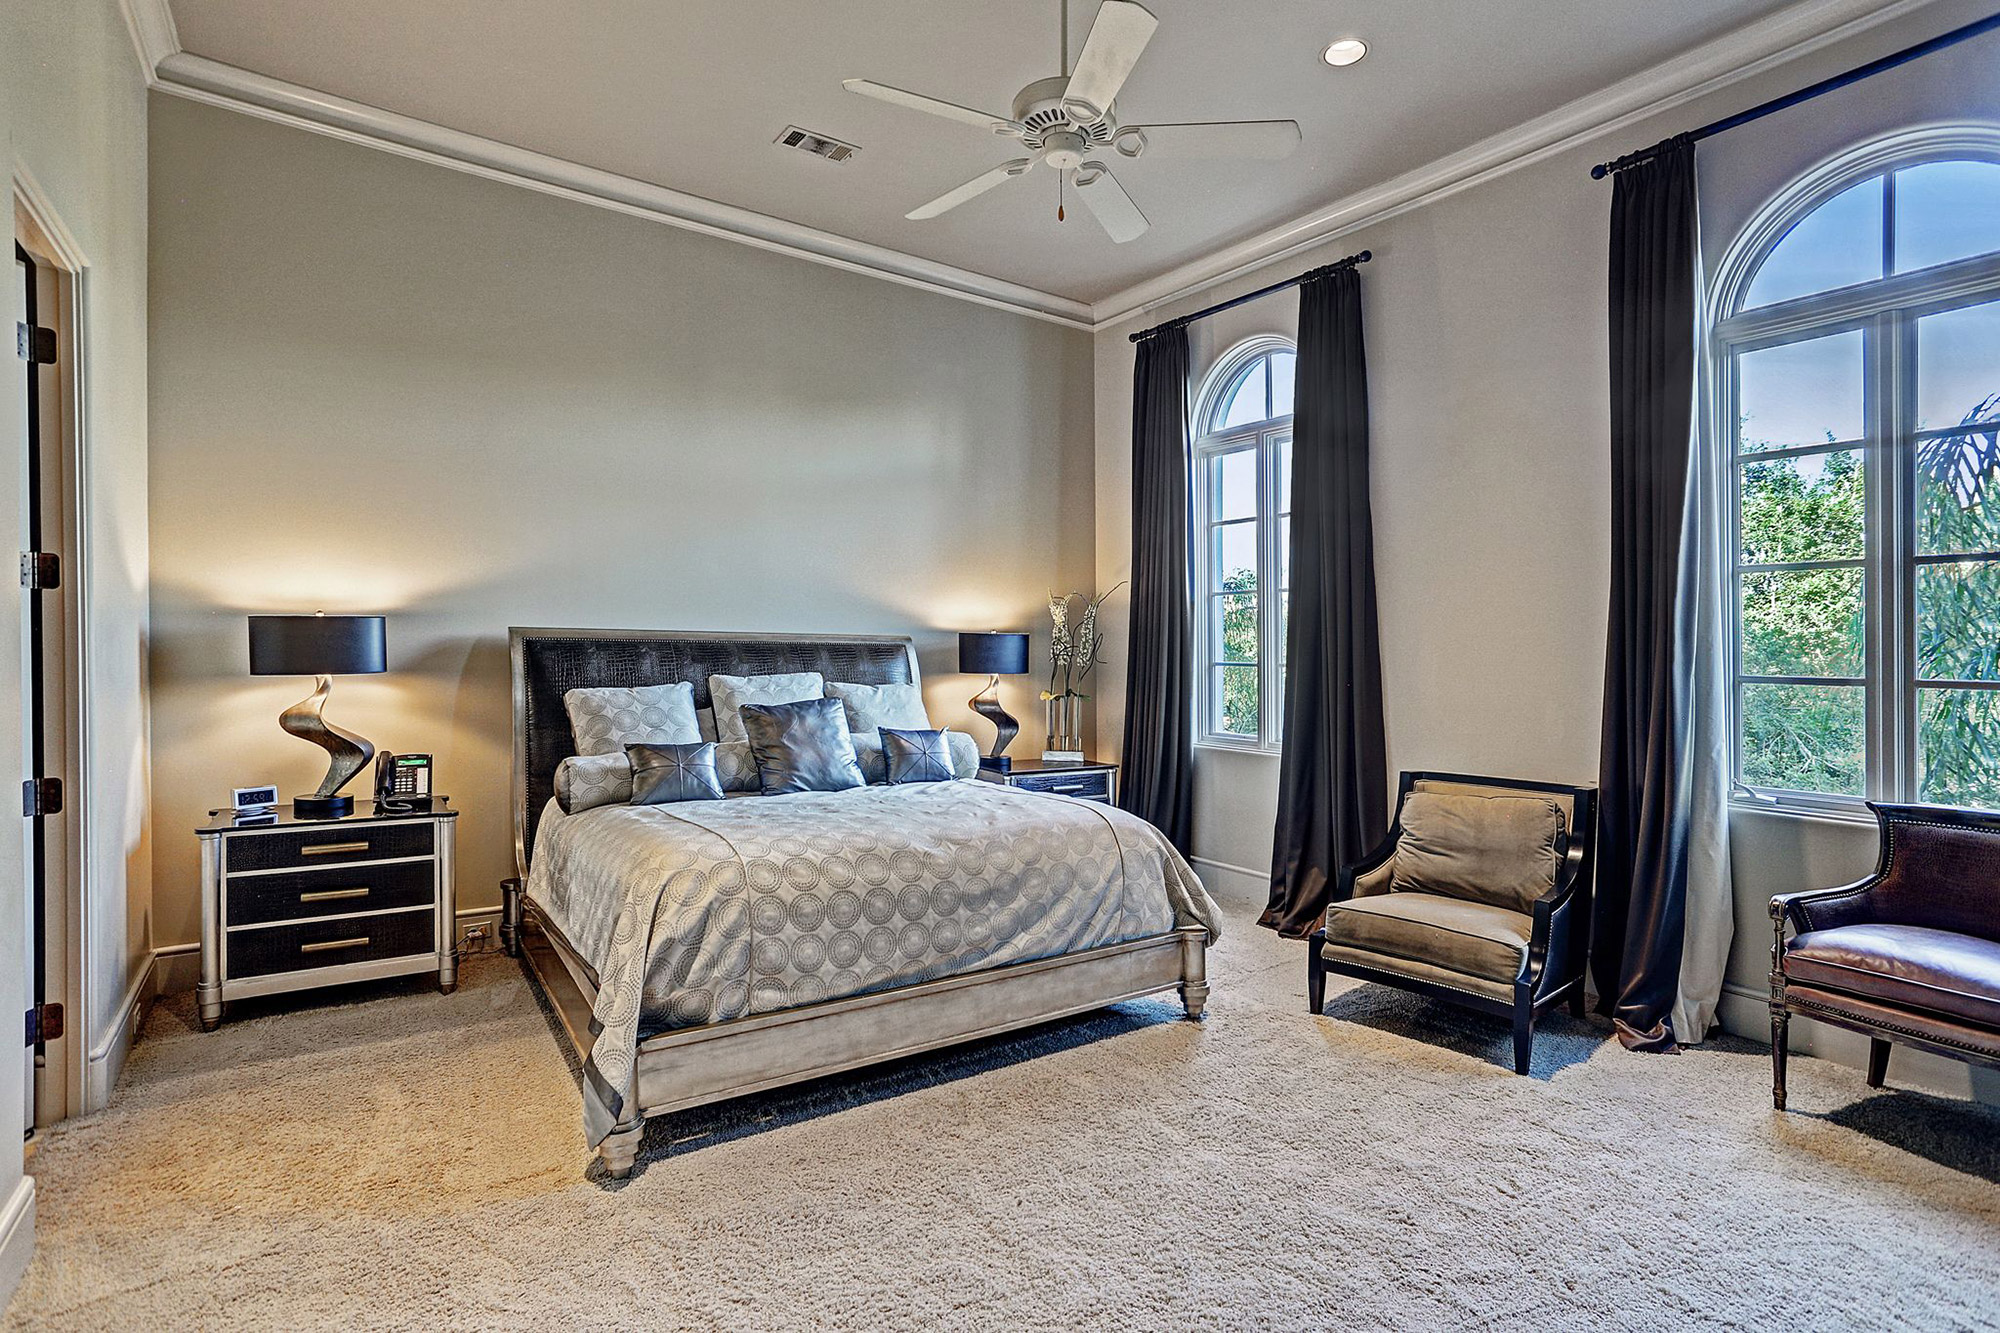 Tracy McGrady - Texas Home for Sale